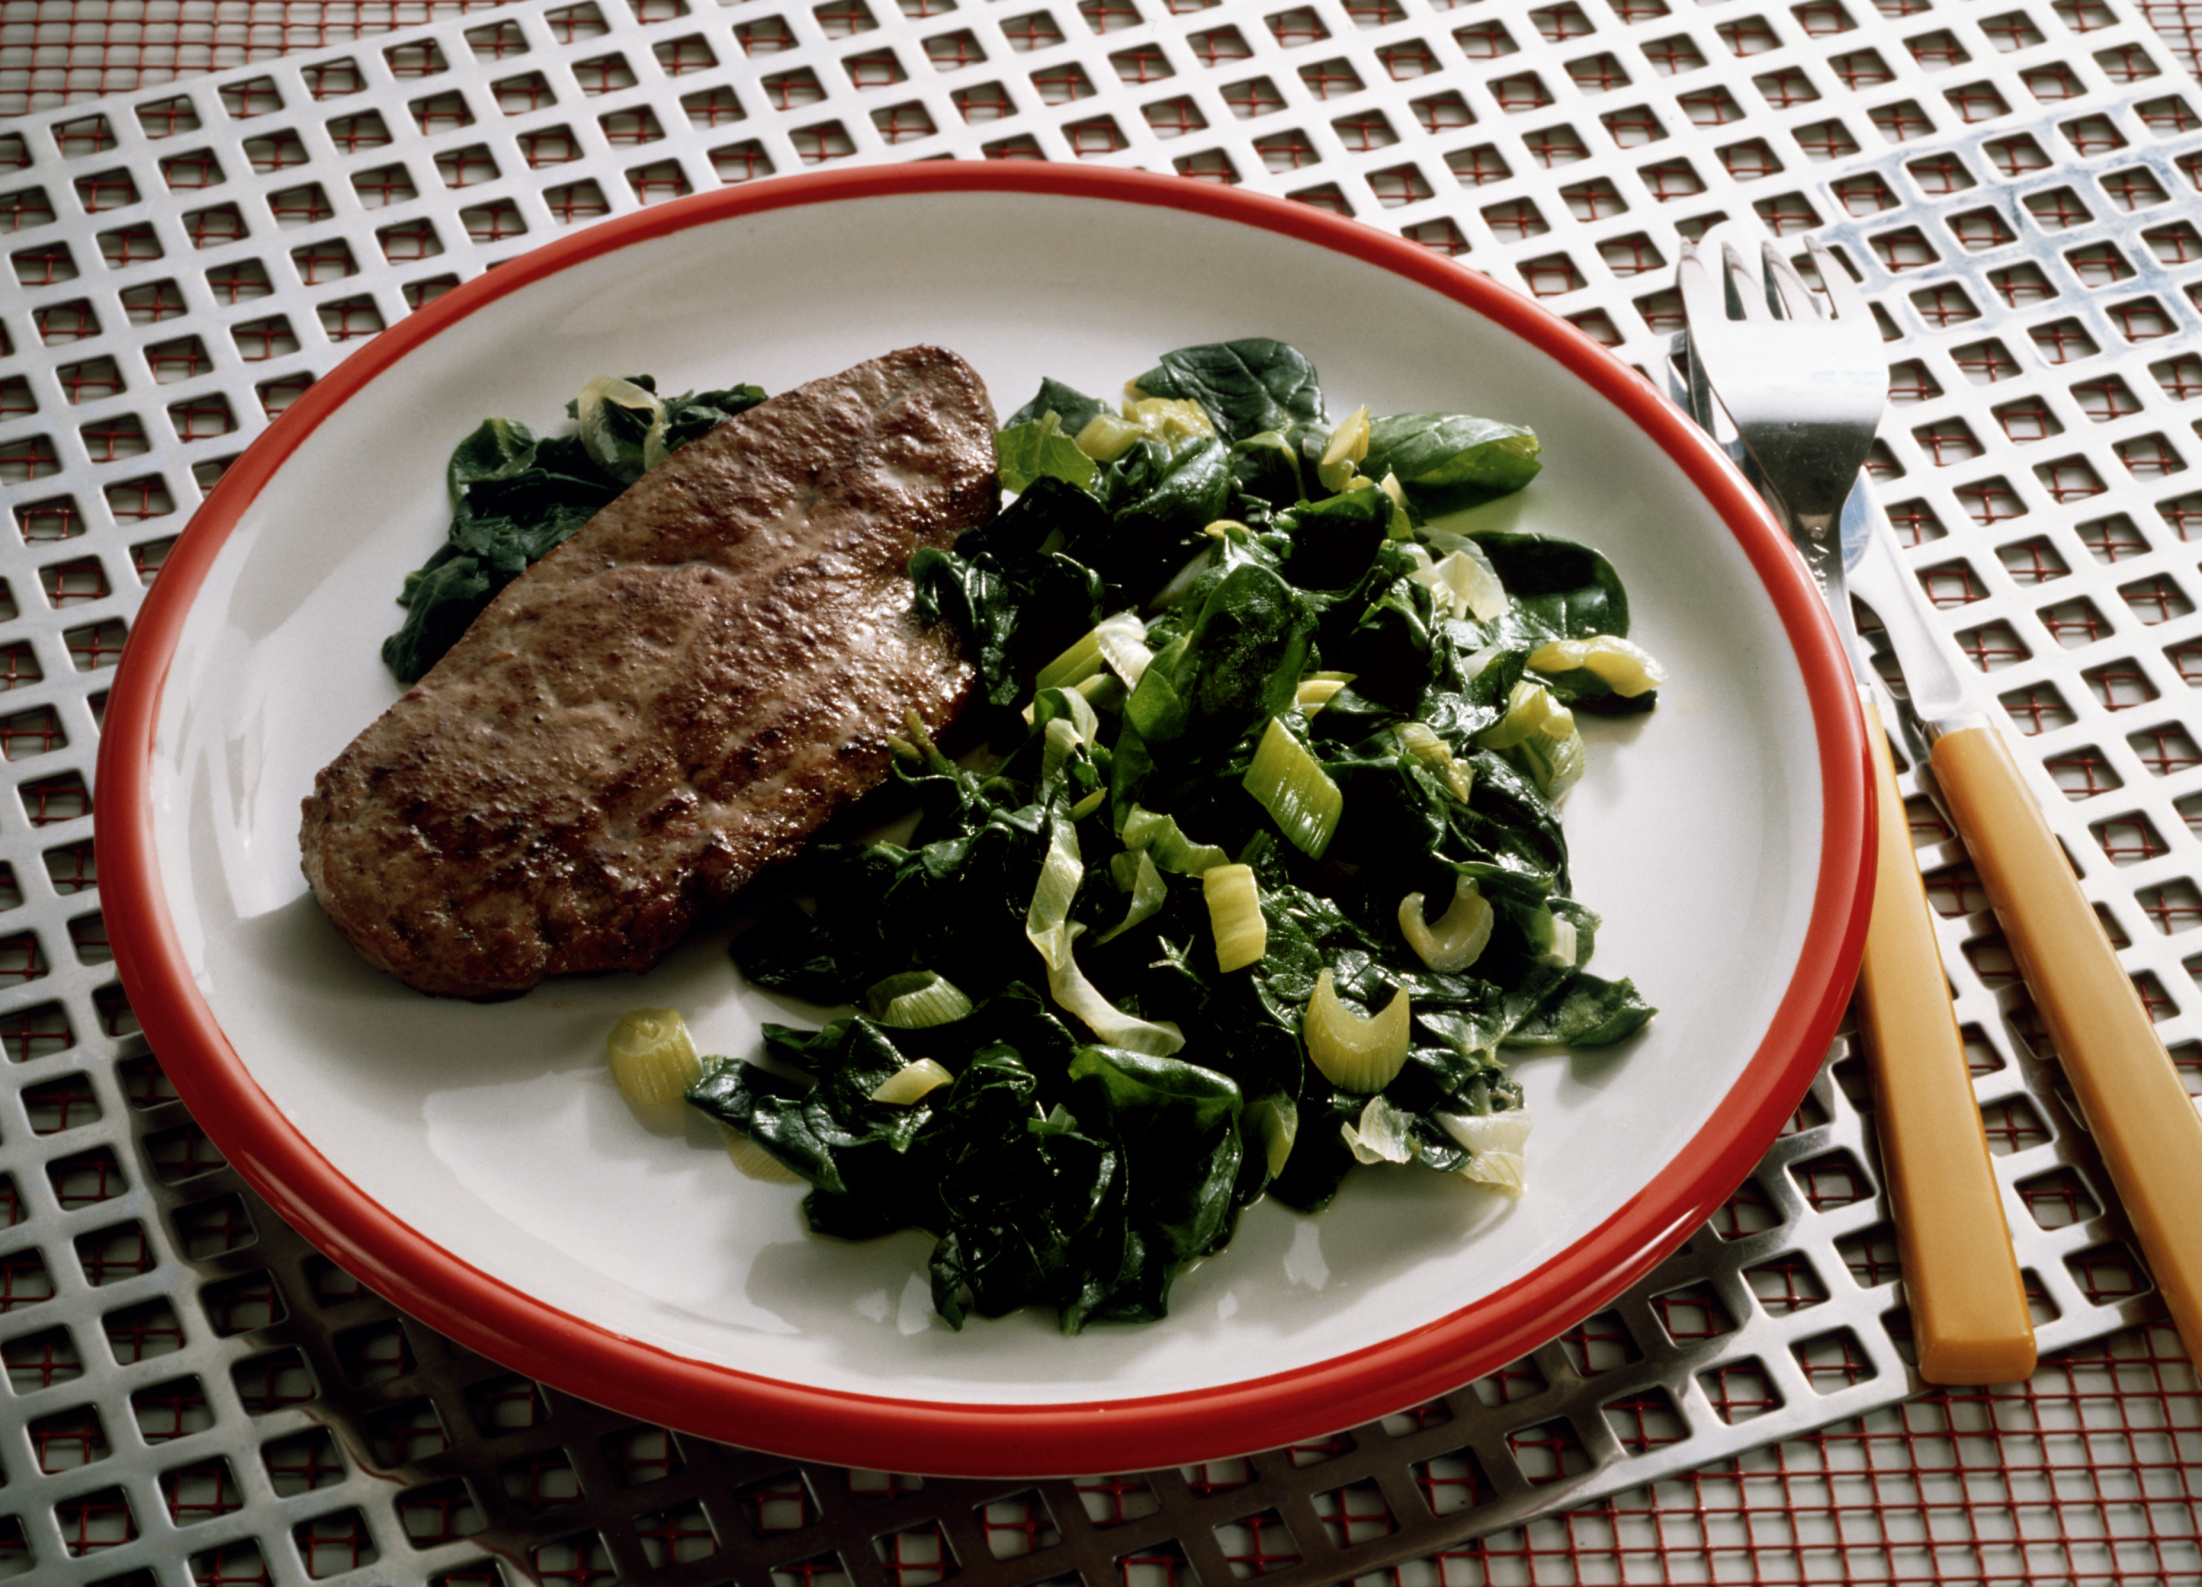 The liver of beef. Benefits and contraindications for use